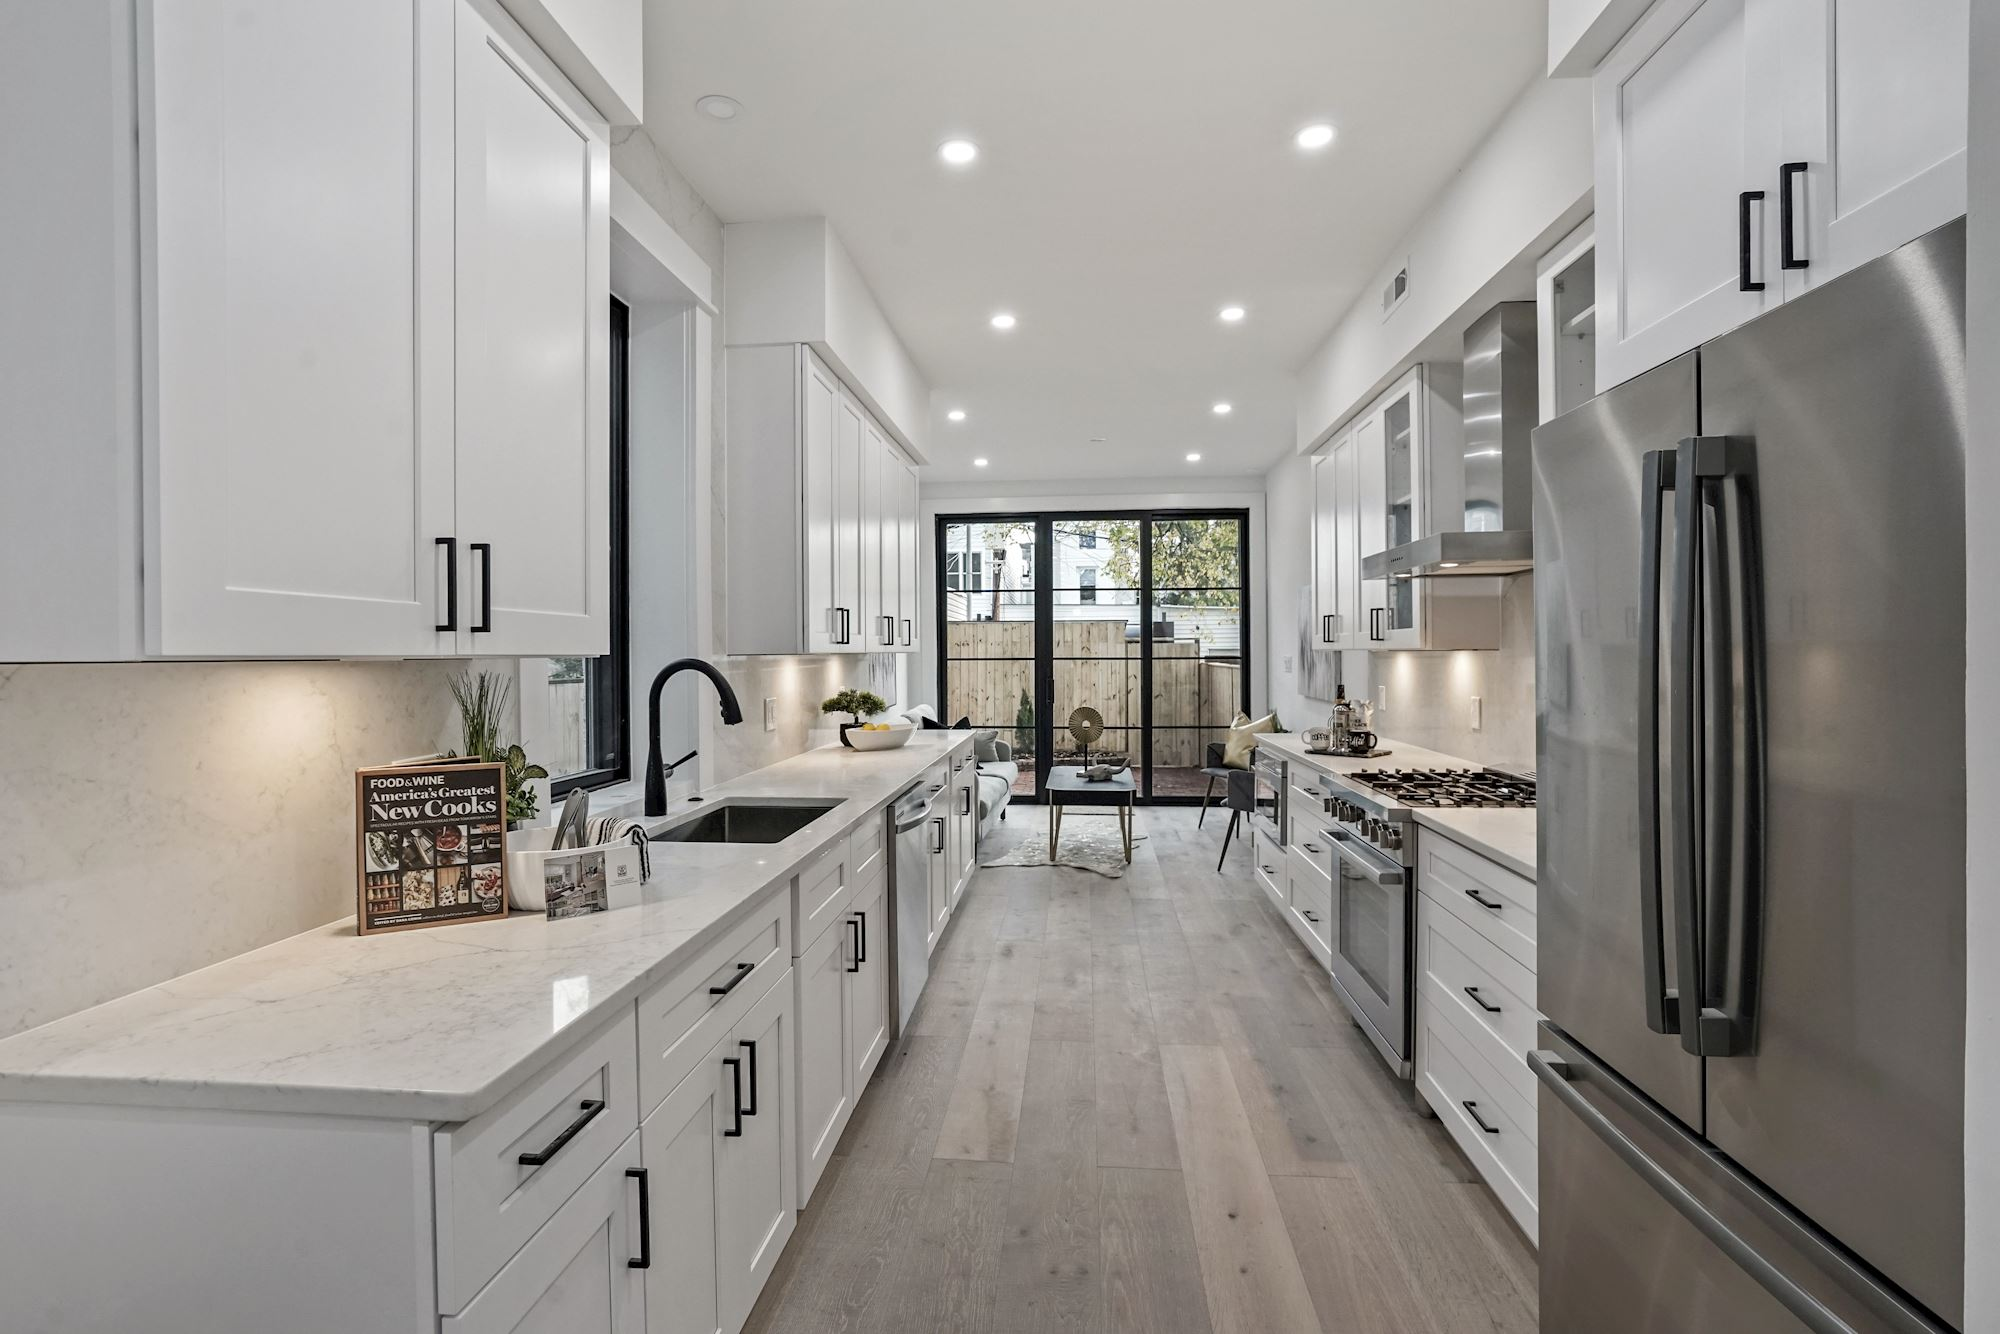 Modern Farmhouse Shotgun Row House in DC